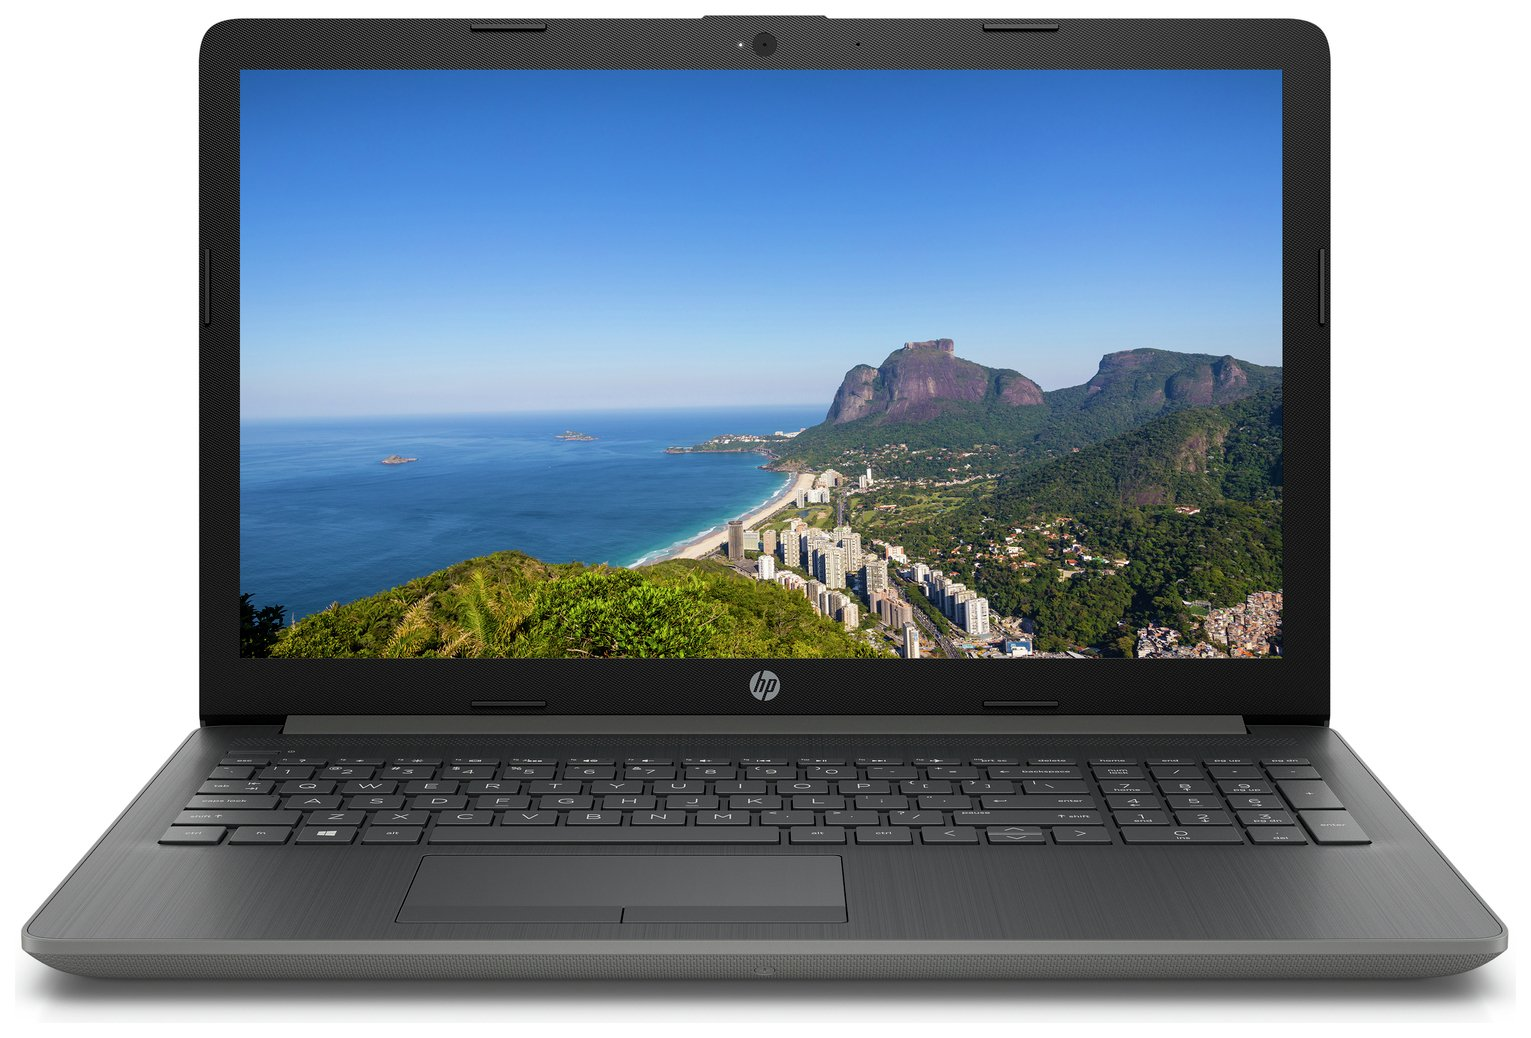 HP 15.6 Inch i3 8GB 1TB Full HD Laptop - Grey